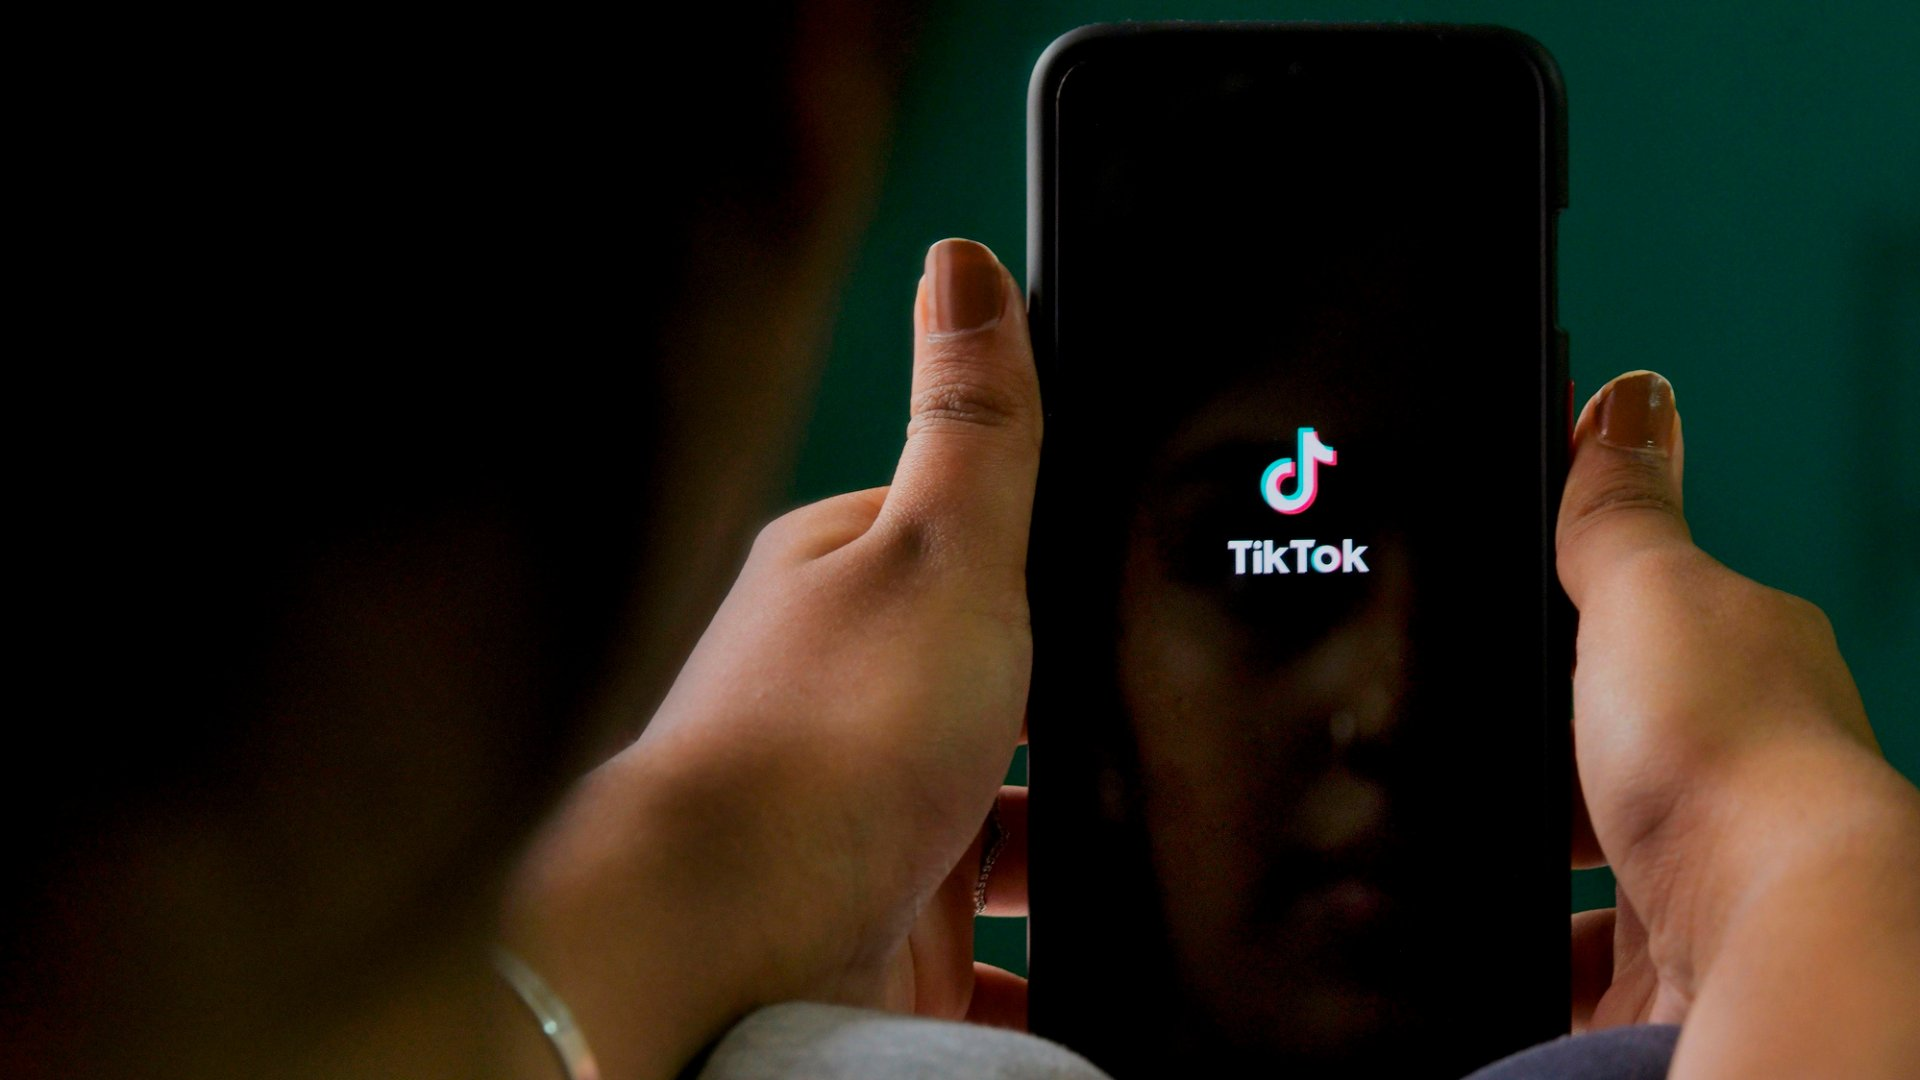 A mobile user browses through the Chinese-owned TikTok app on a smartphone in Bangalore, India. TikTok on June 30 denied sharing information on Indian users with the Chinese government, after New Delhi banned the wildly popular app, citing national security and privacy concerns.